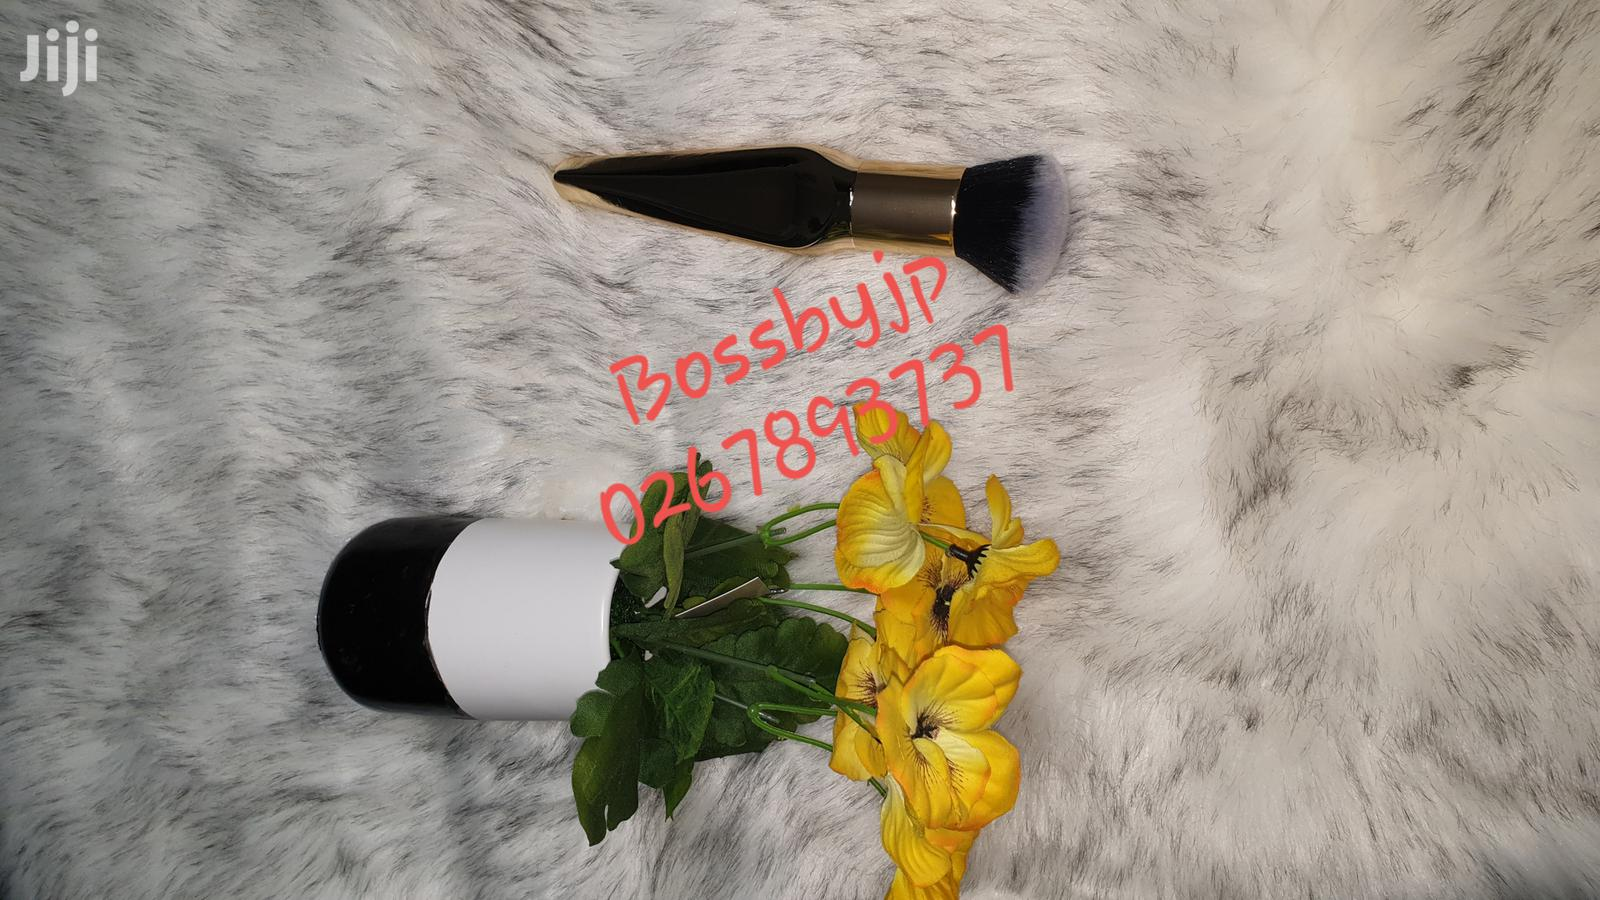 Blush Makeup Brush for Sale | Health & Beauty Services for sale in East Legon, Greater Accra, Ghana